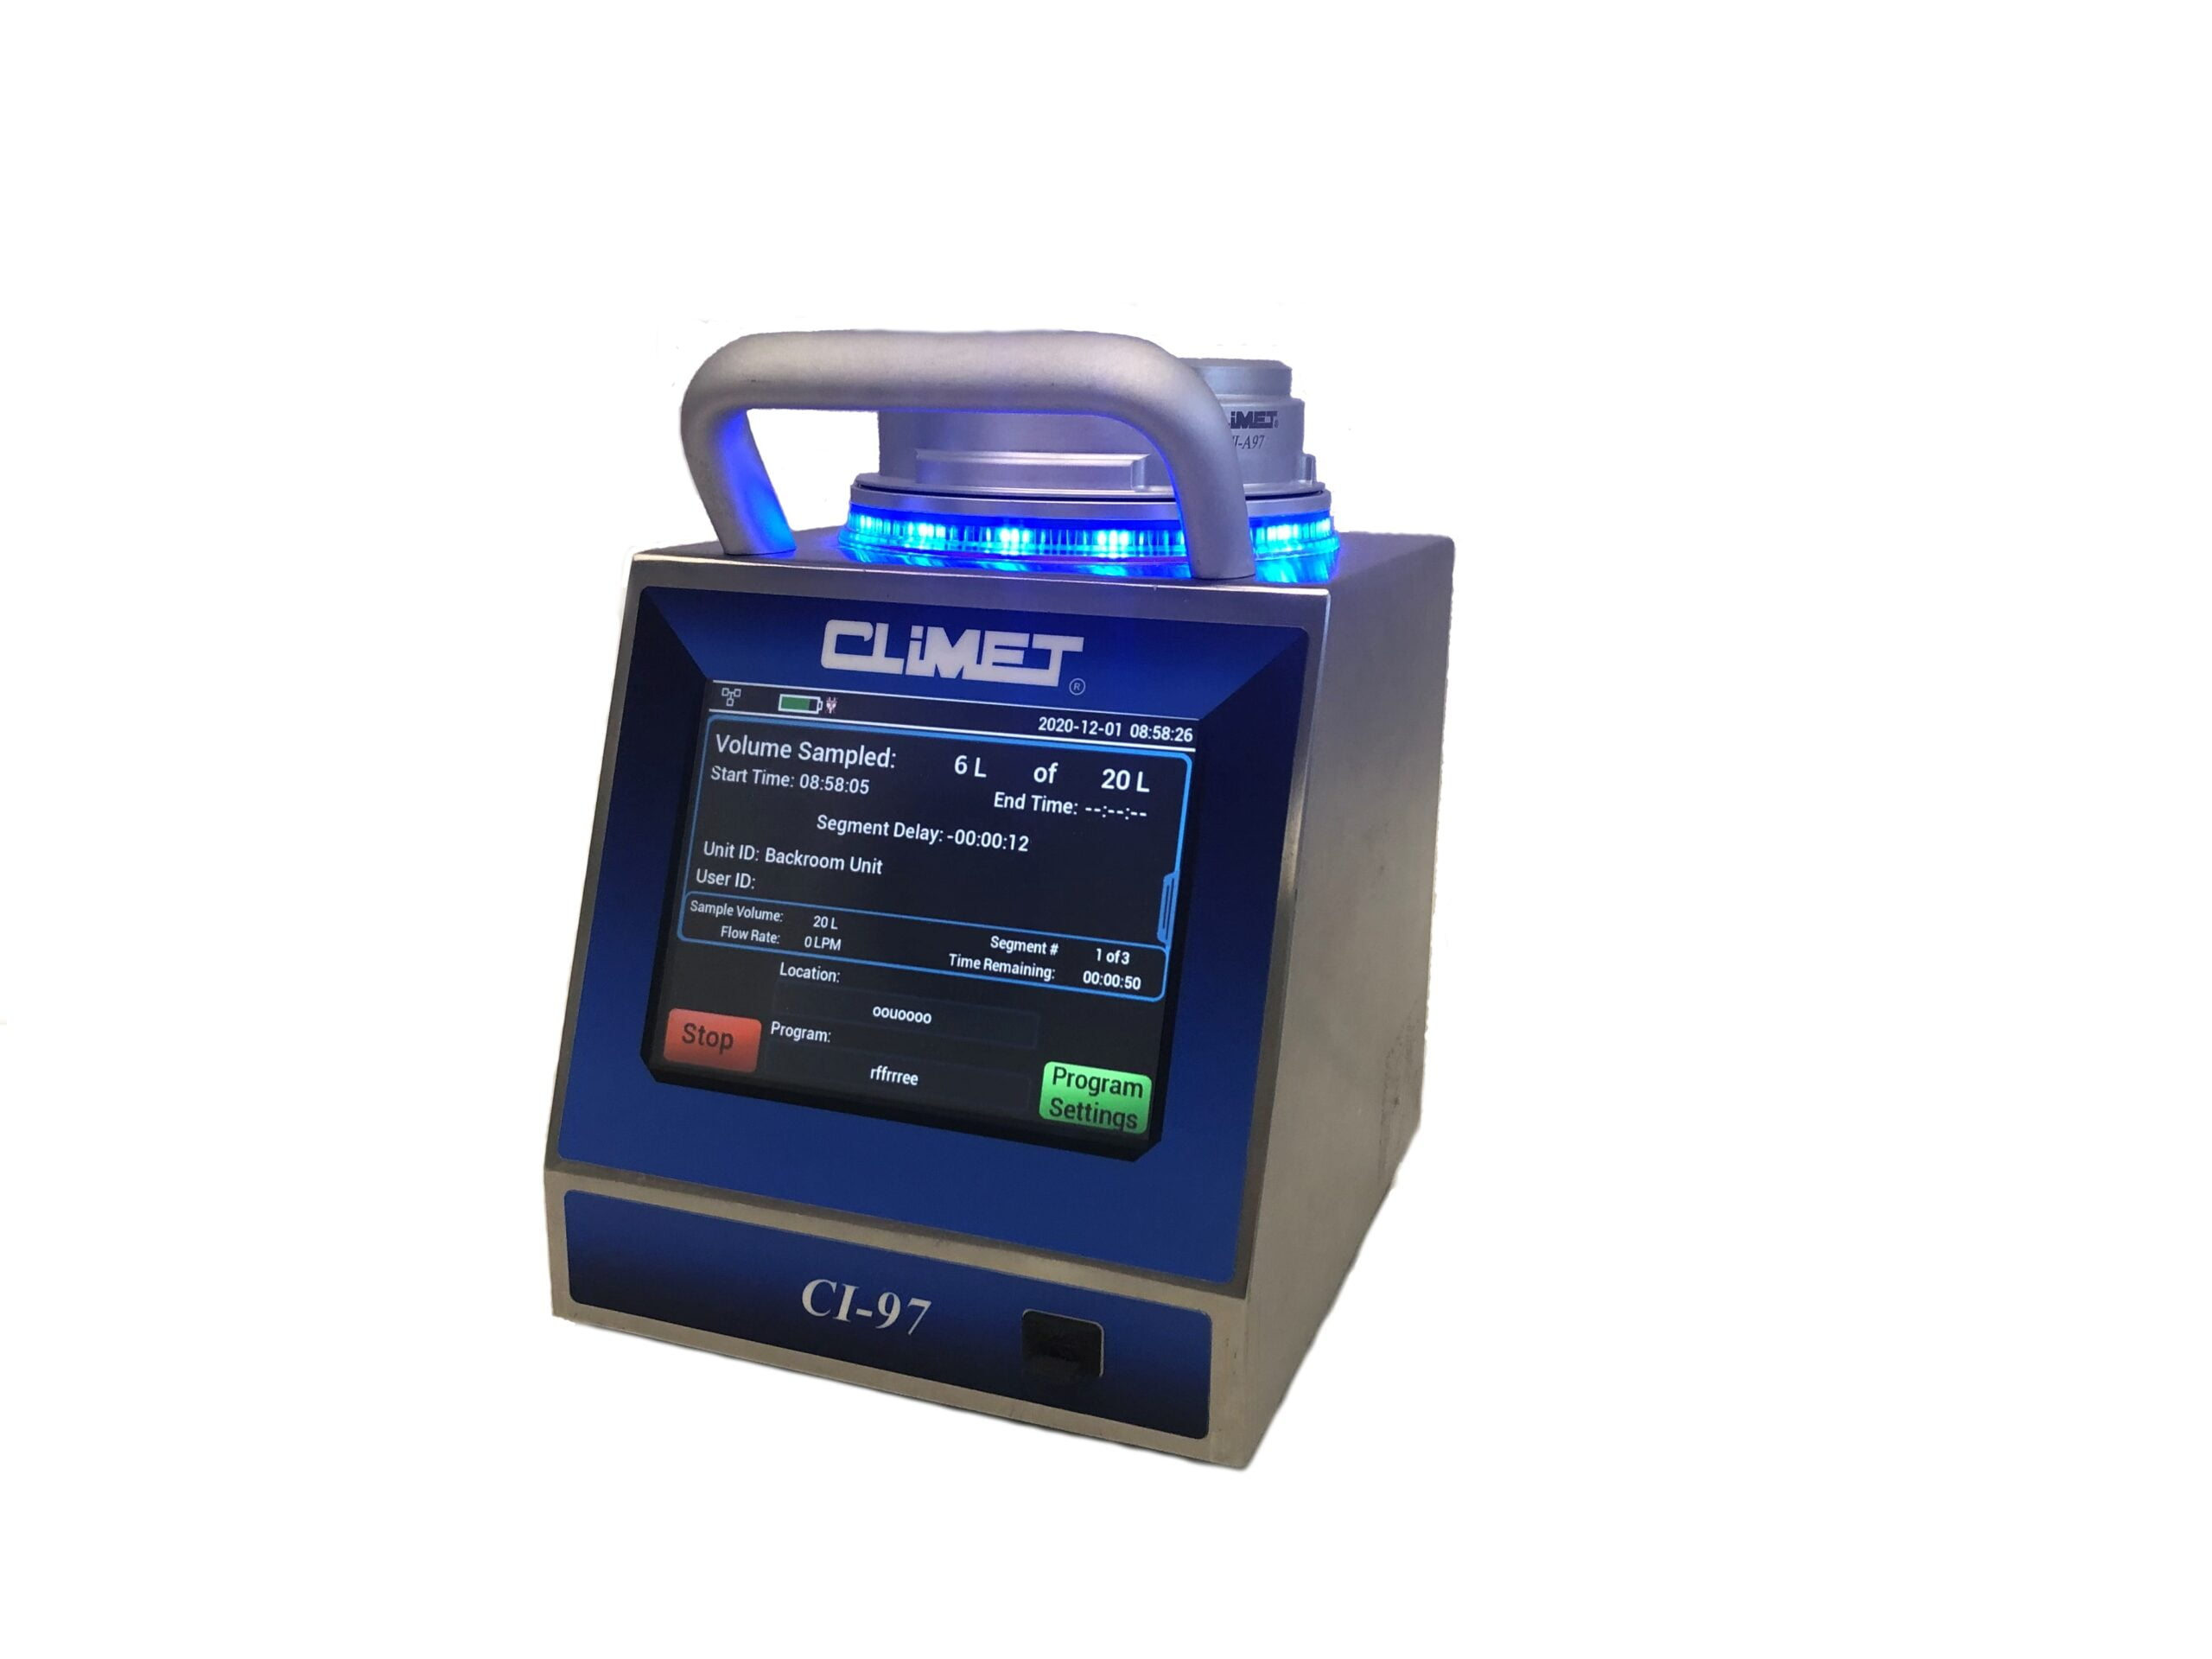 Climet Announces Introduction of the CI-97 Microbial Air Sampler With Data Integrity and New Advanced Features